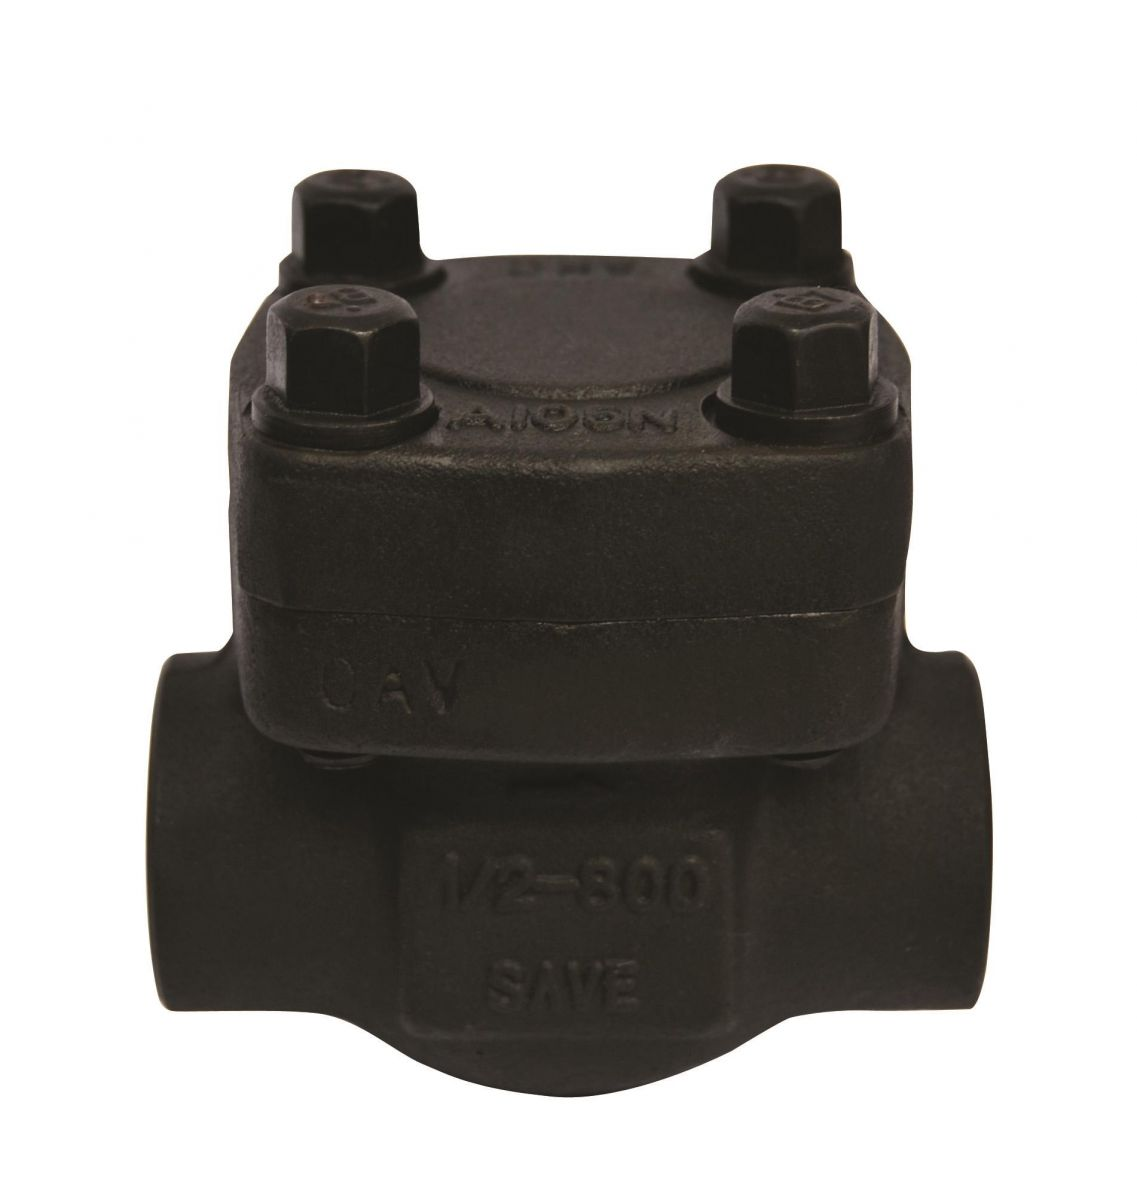 API 602 Piston Check Valve, A105N, 1/2 Inch, 800LB, Trim 5